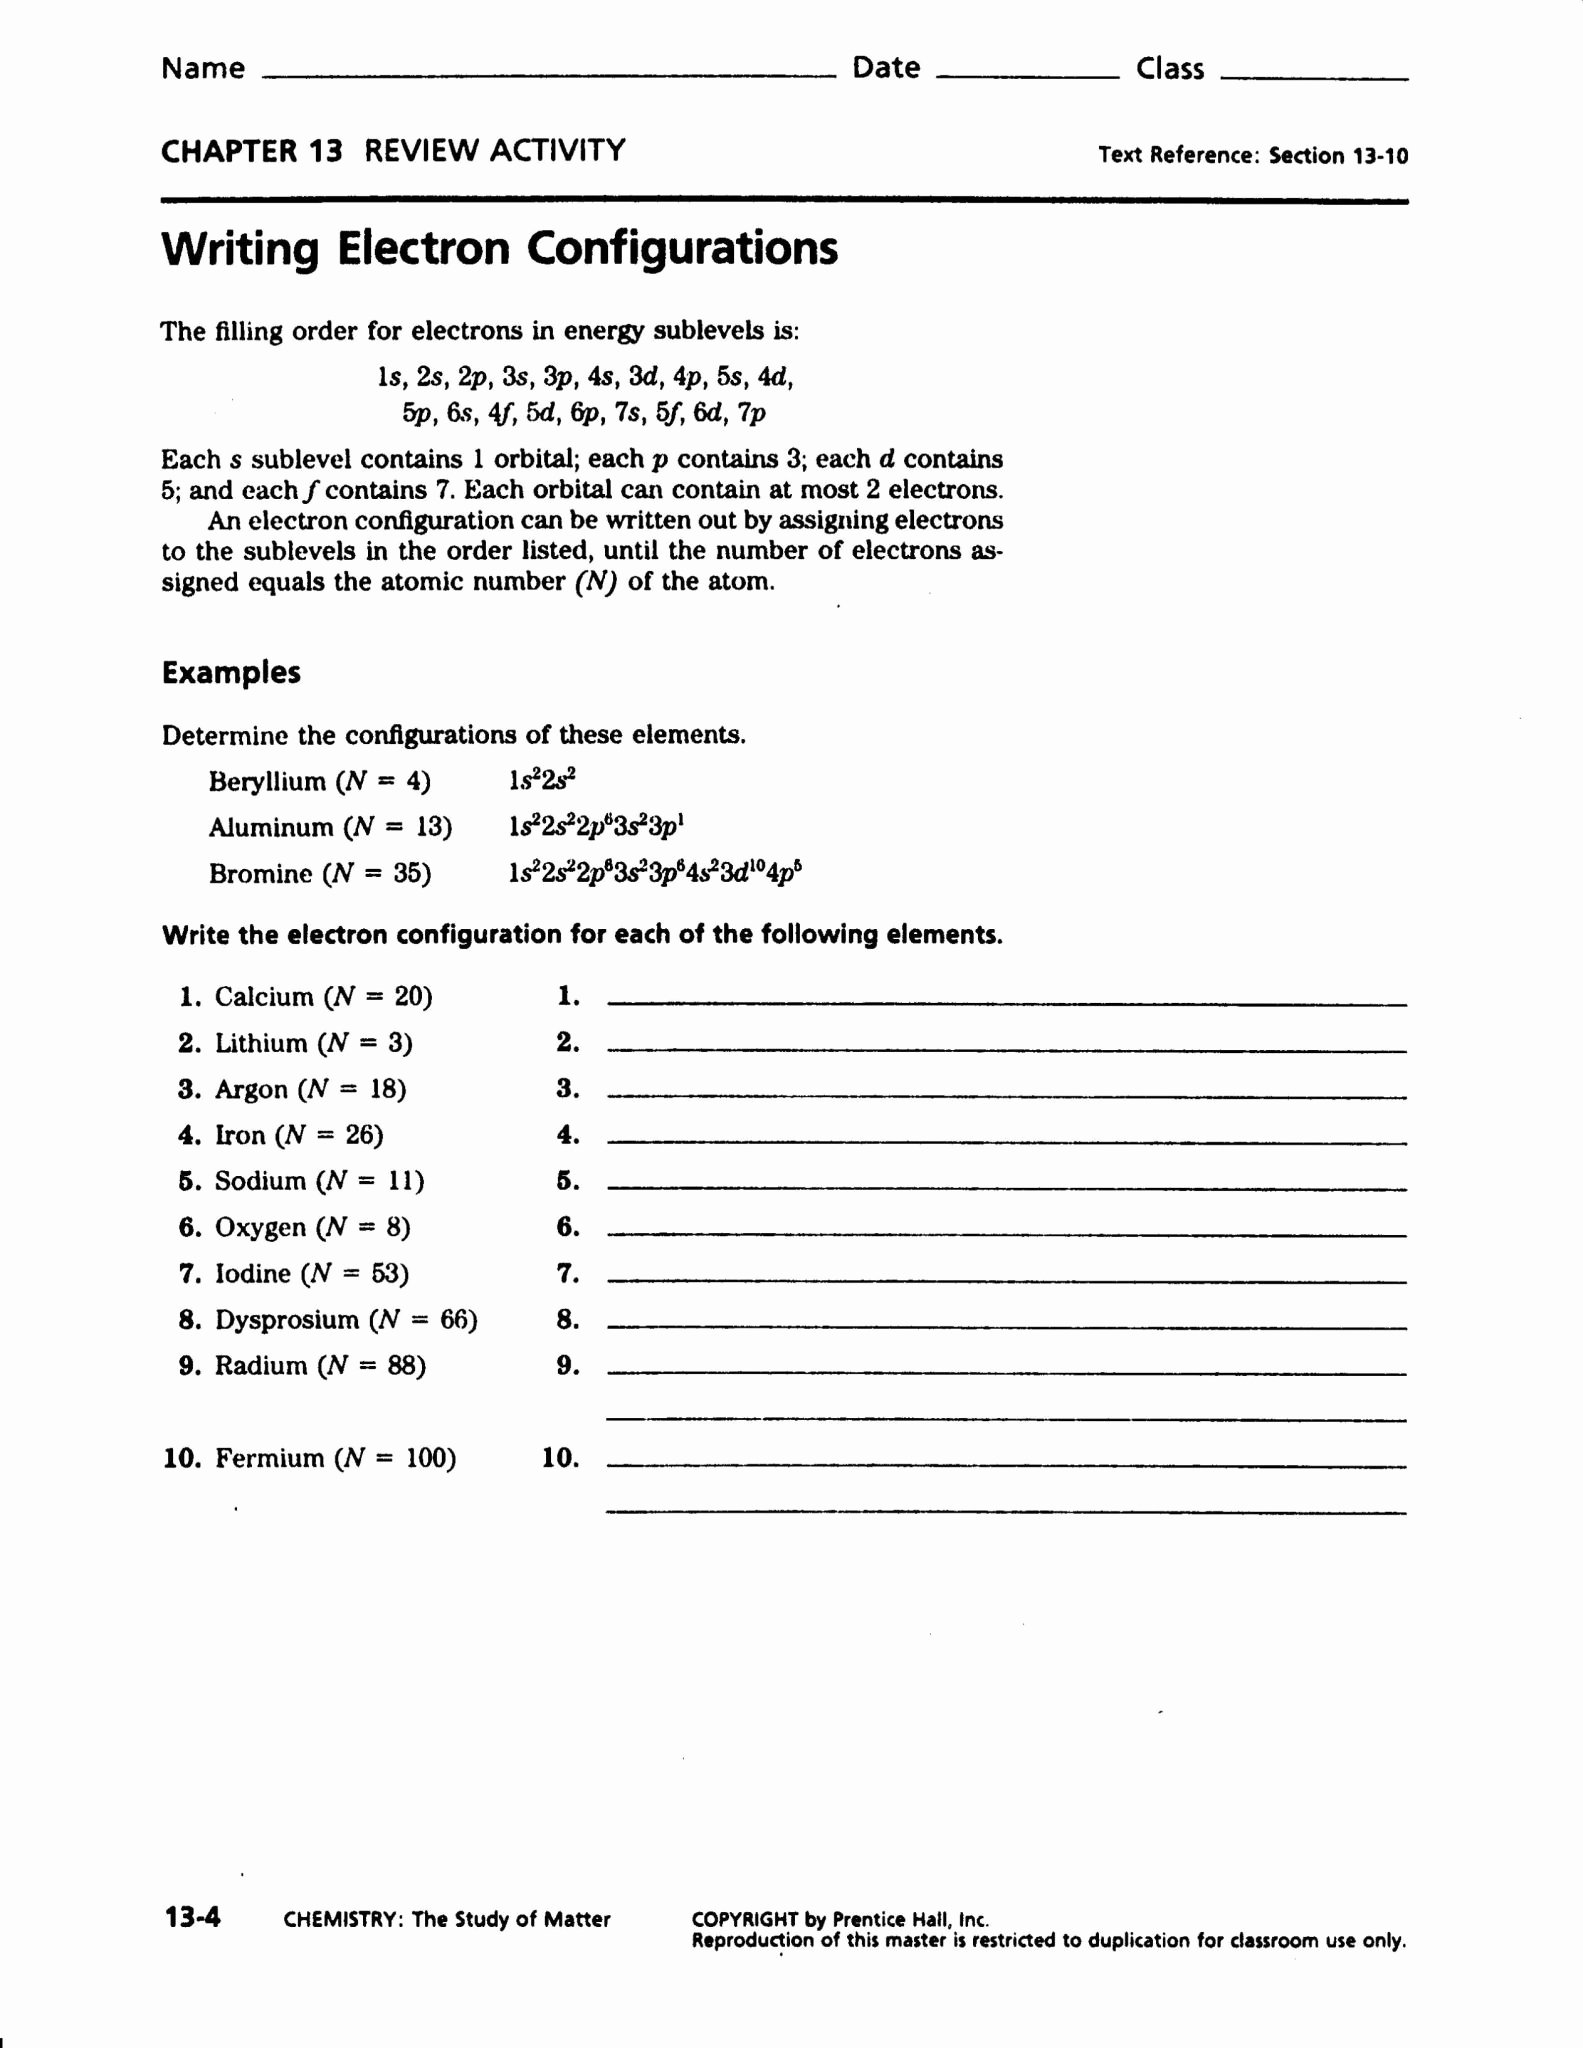 Electron Configuration Practice Worksheet Lovely Protons Neutrons and Electrons Practice Worksheet Answer